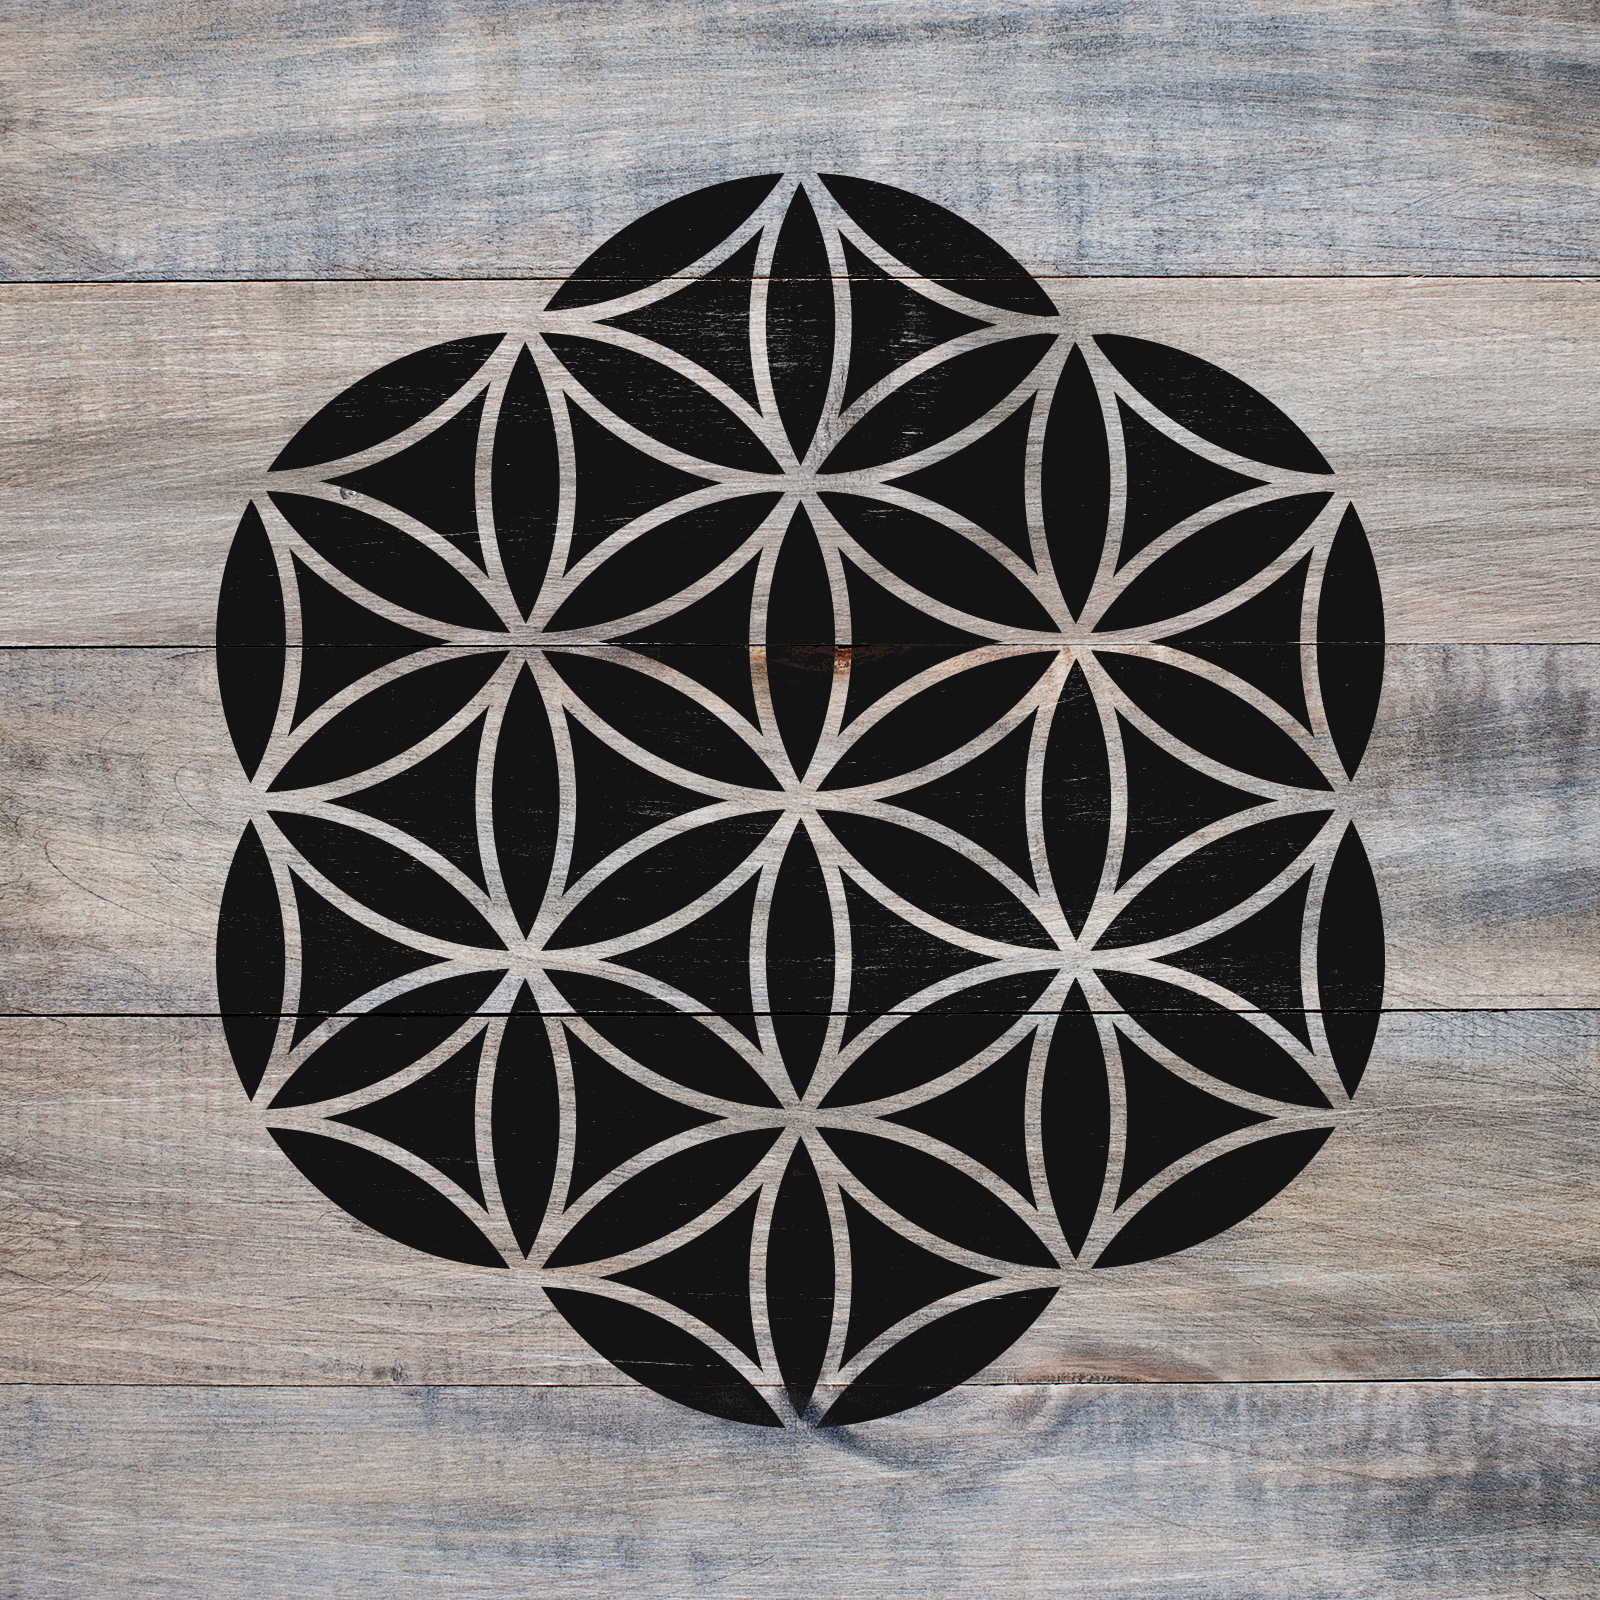 Flower of Life Stencil - Reusable Geometric Stencil in Small & Large Sizes